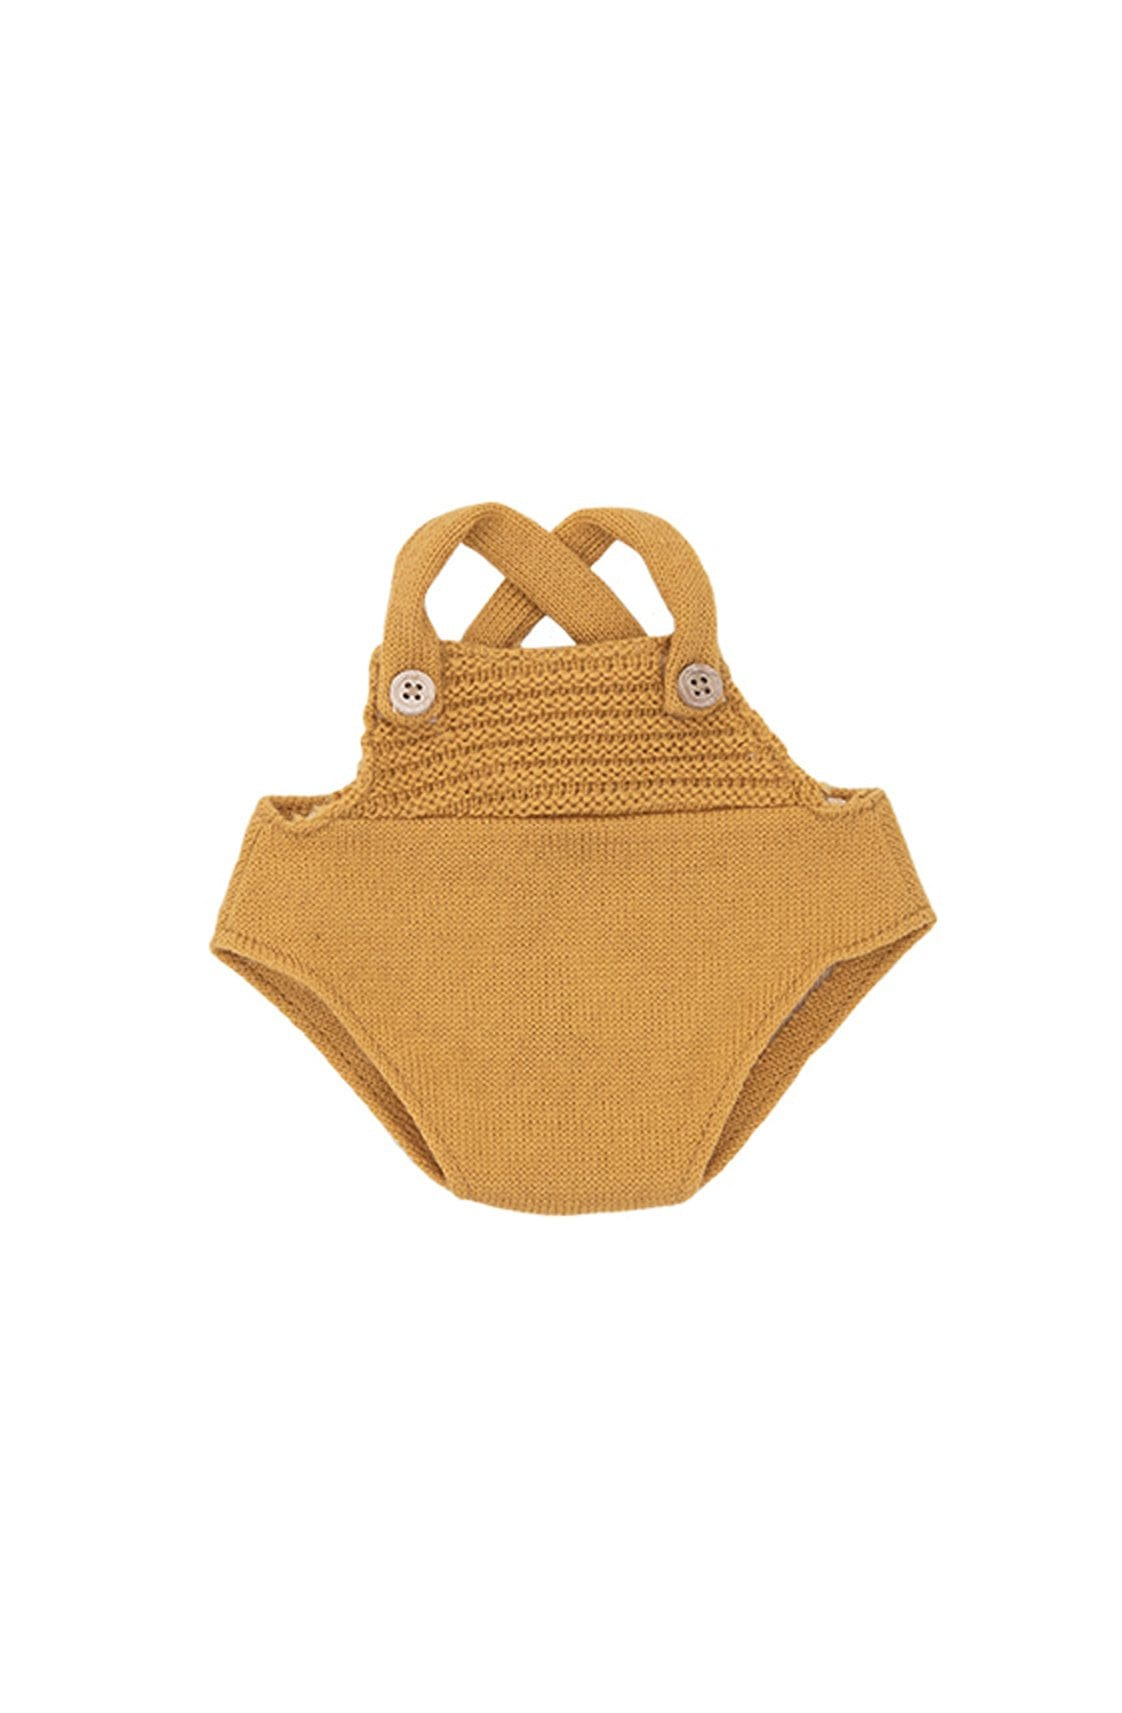 Olli Ella Dinkum Dolls Single Romper, Mustard - Hello Little Birdie